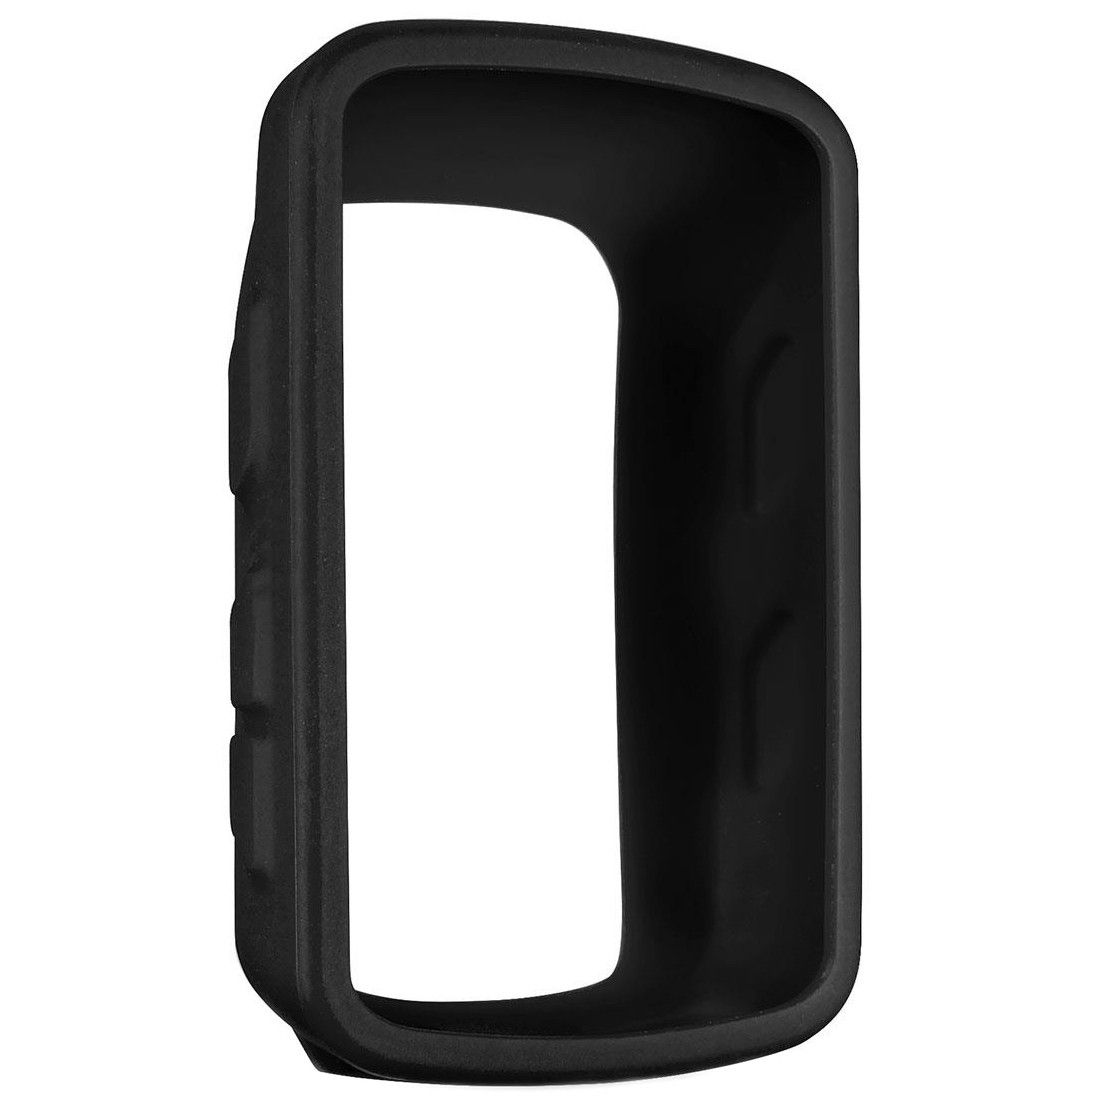 Capa Case Garmin Edge 520 - Silicone